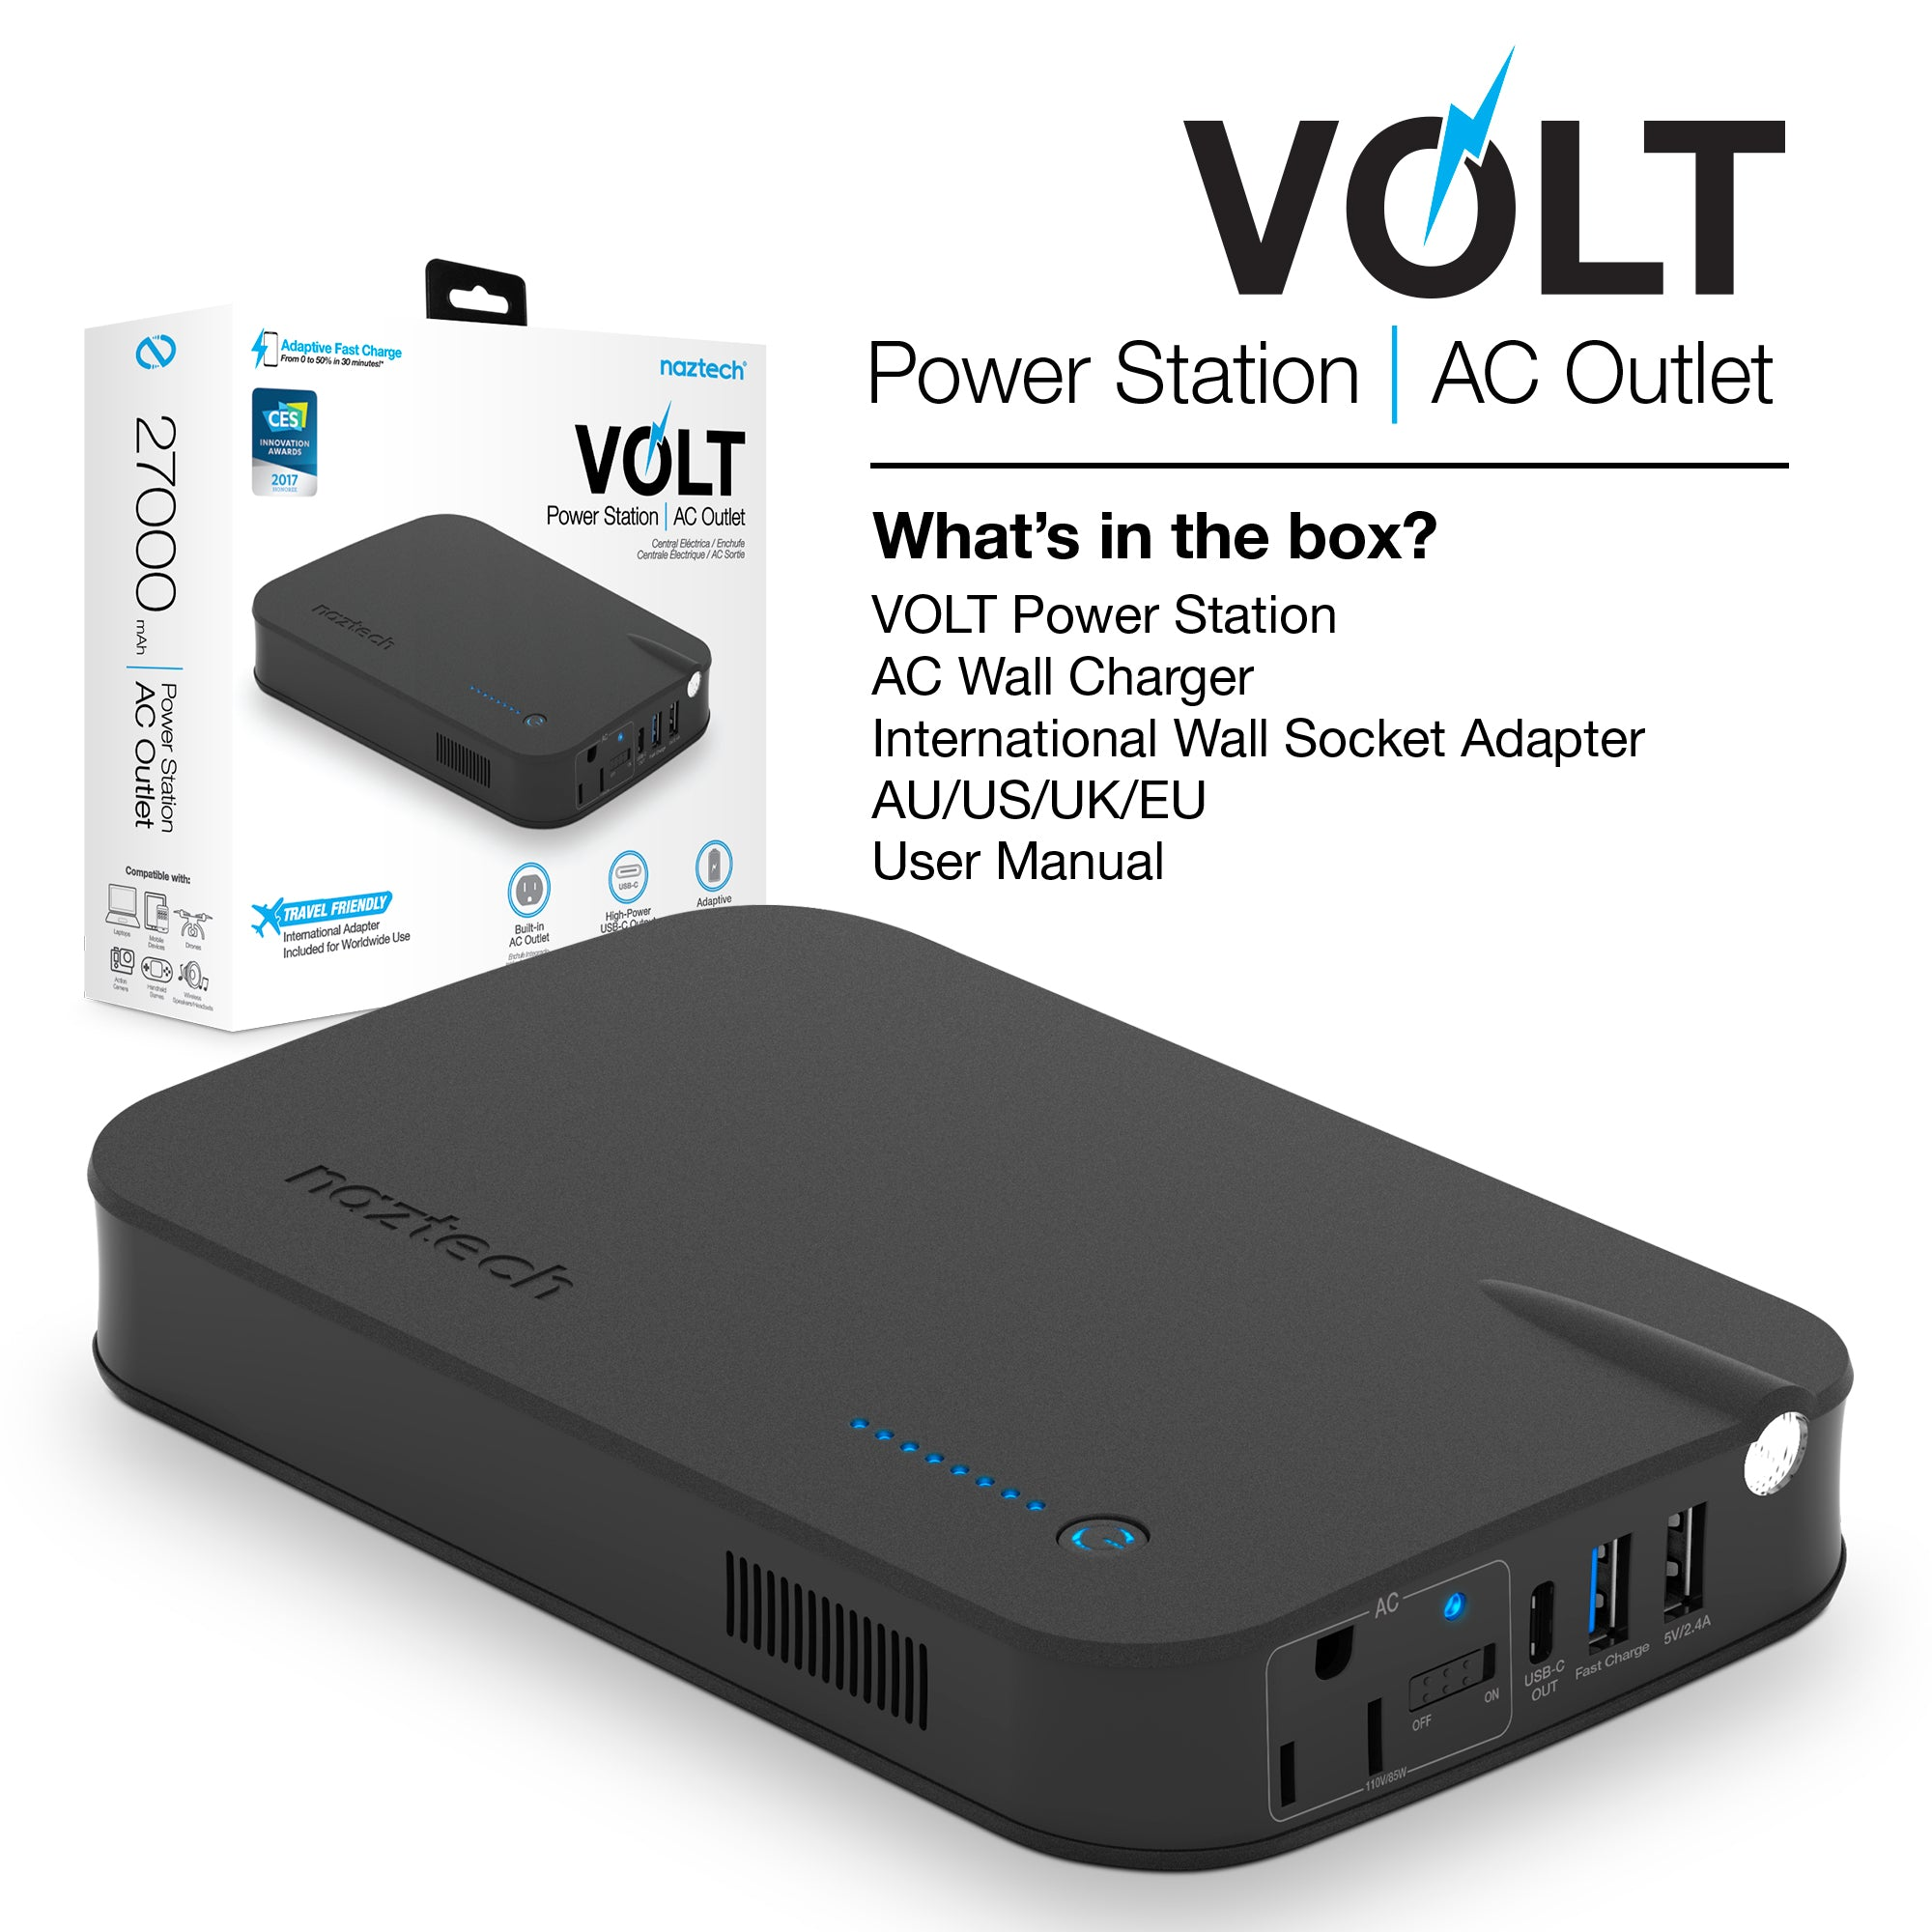 Volt Power Station | AC Outlet